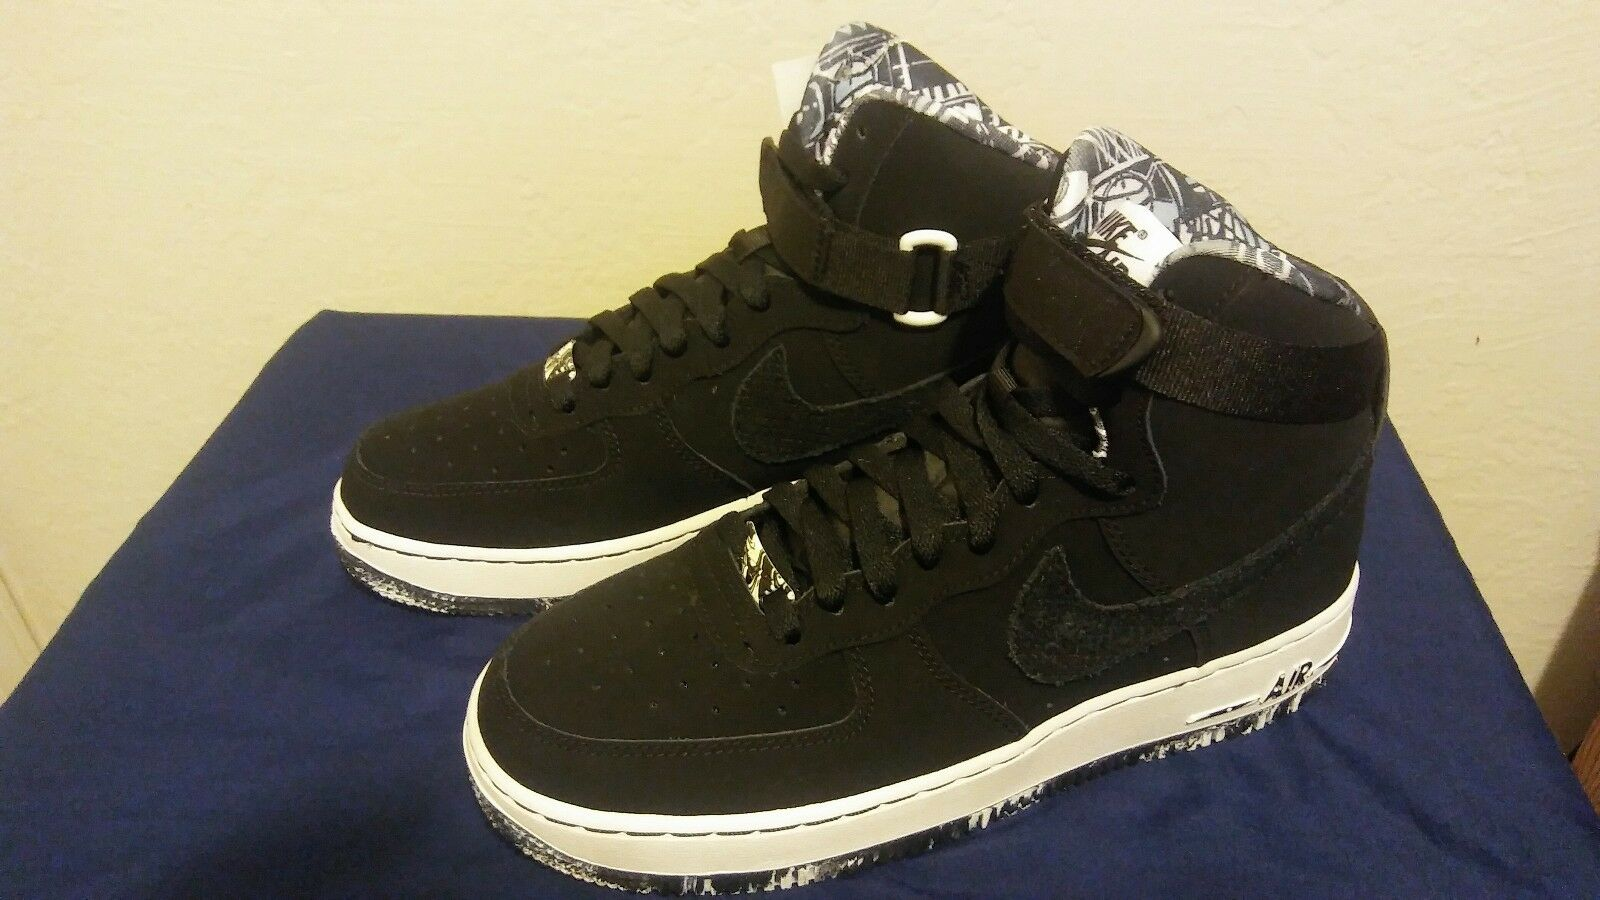 Black suede Air Force 1 size 7